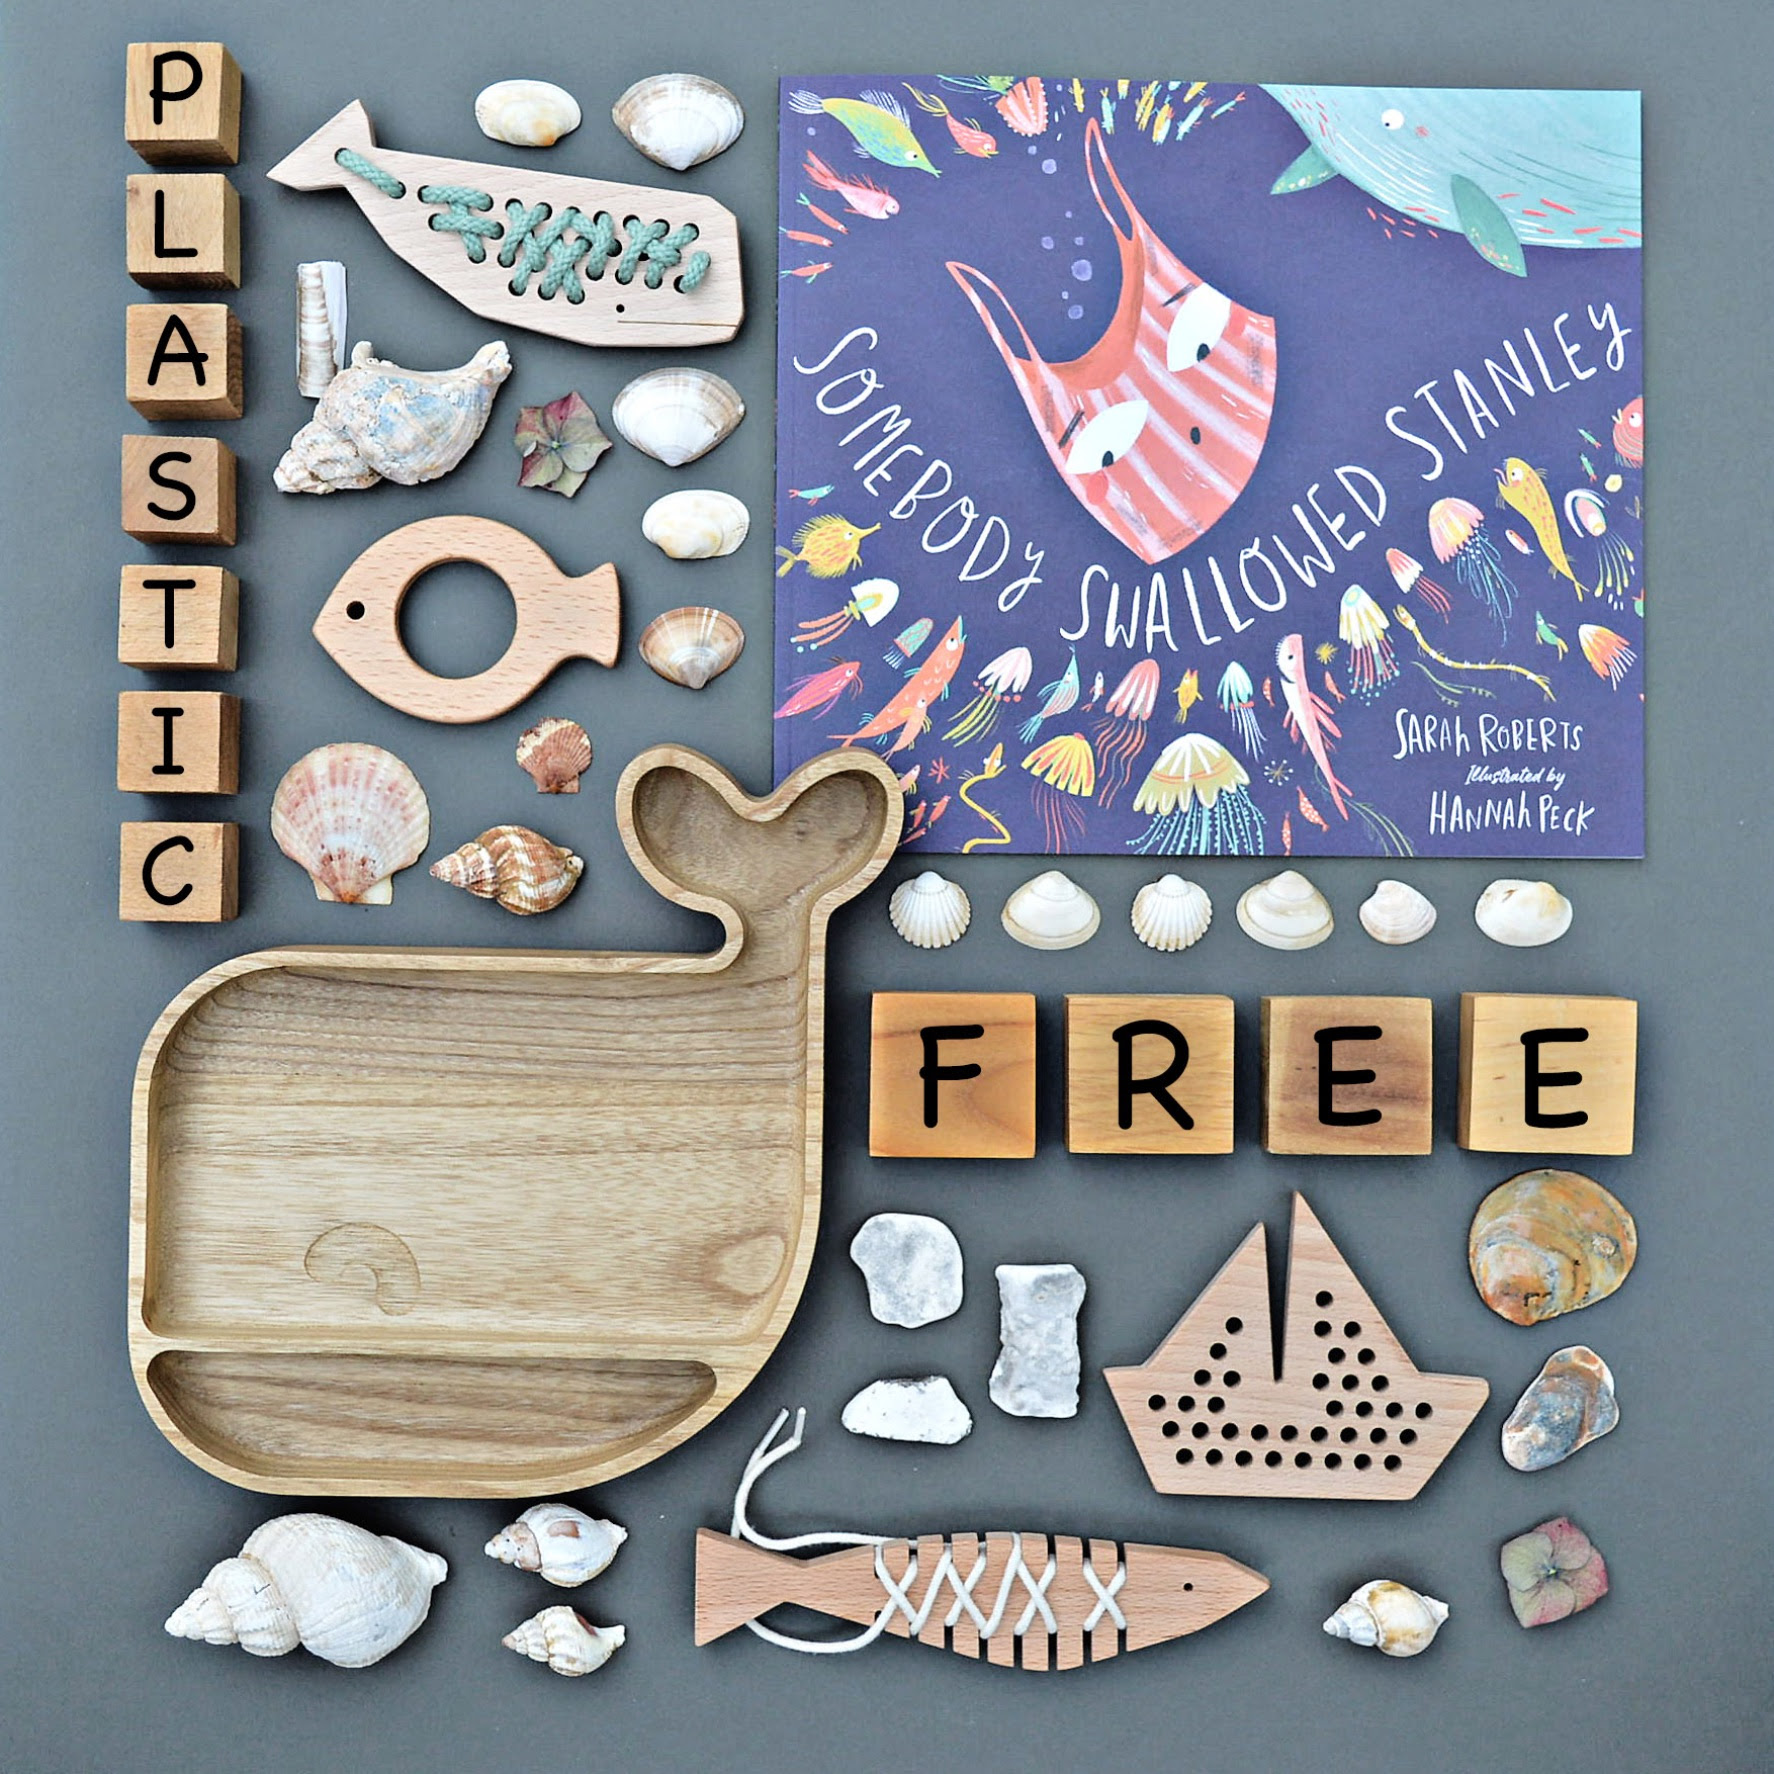 plastic free childrens wooden toys & tableware